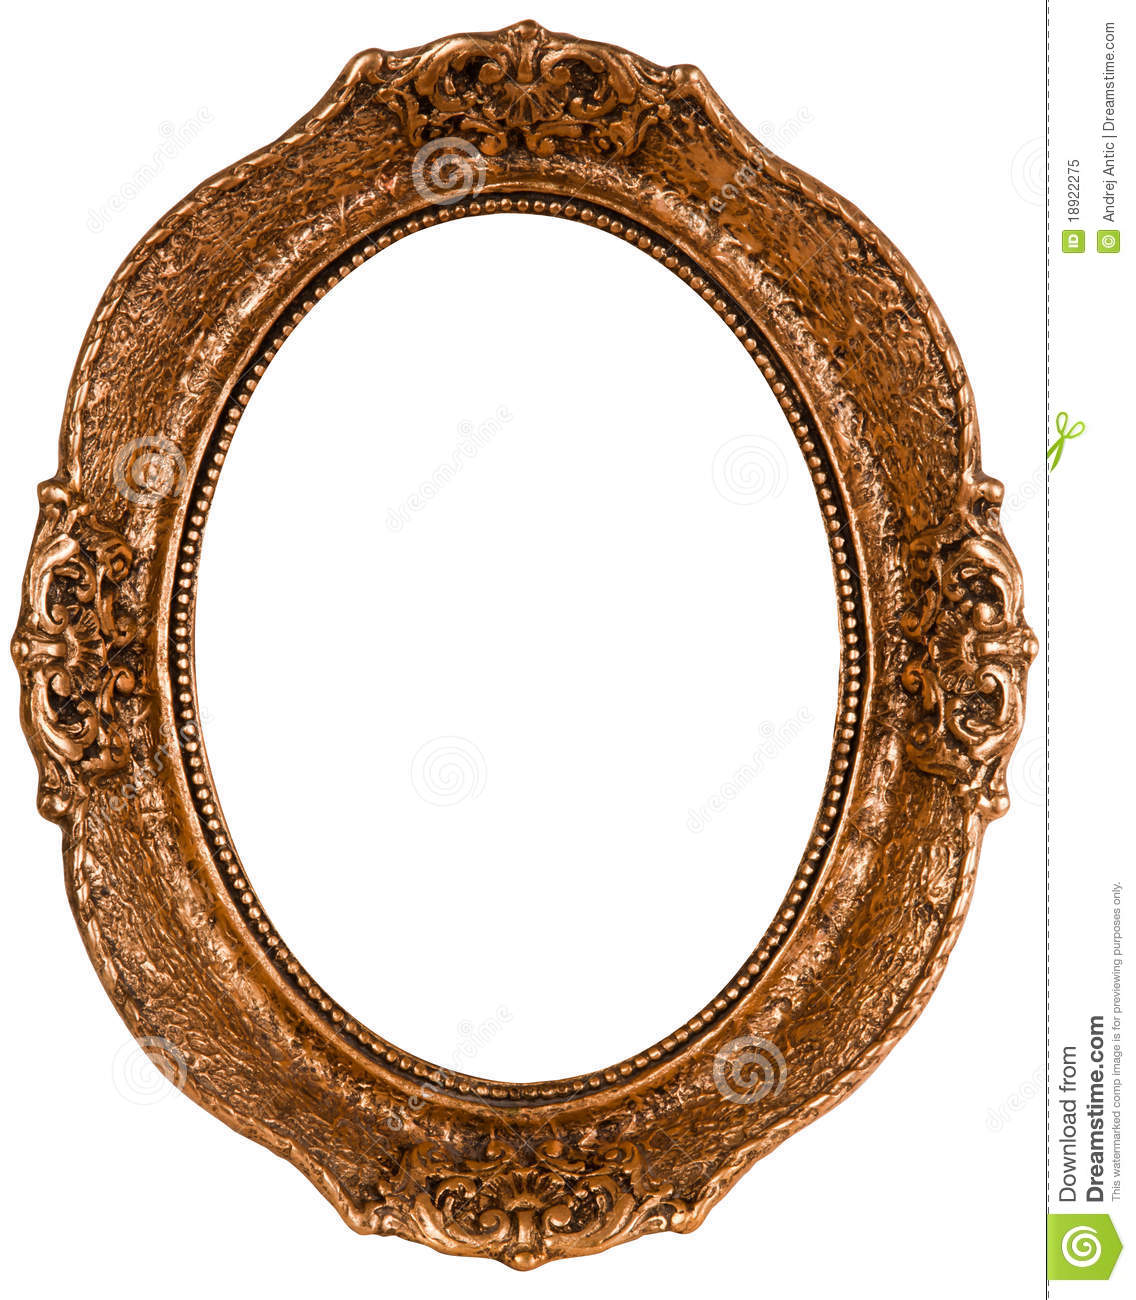 Old Frame Royalty Free Stock Photo - Image: 18922275